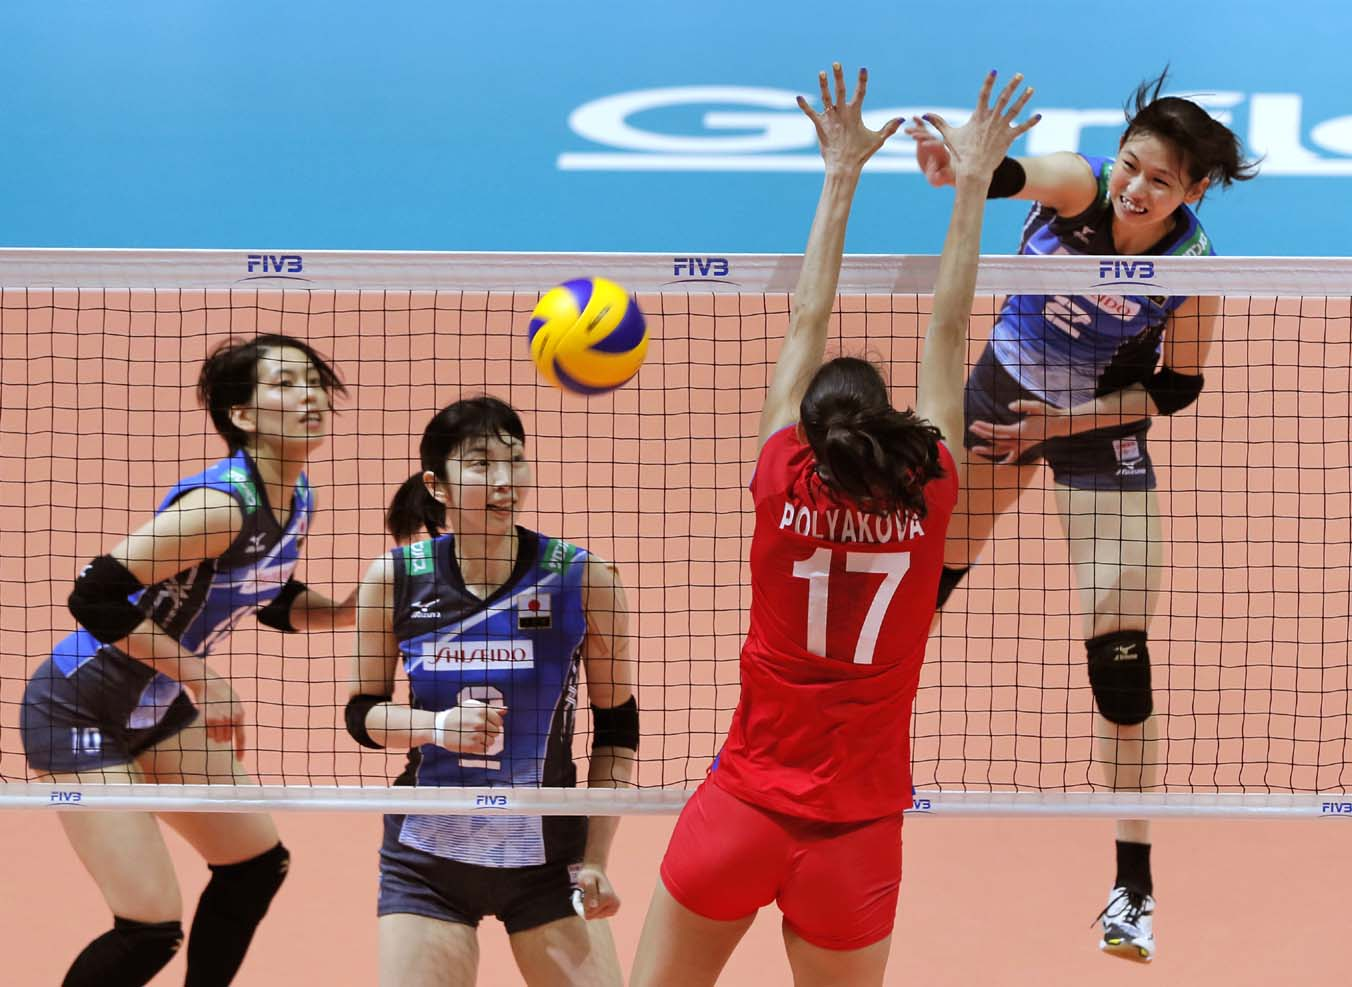 Japan's Sarina Koga (right) (2) spikes the ball during the match against Russia in the World Grand Prix volleyball women's championship in Hong Kong on  Sunday.